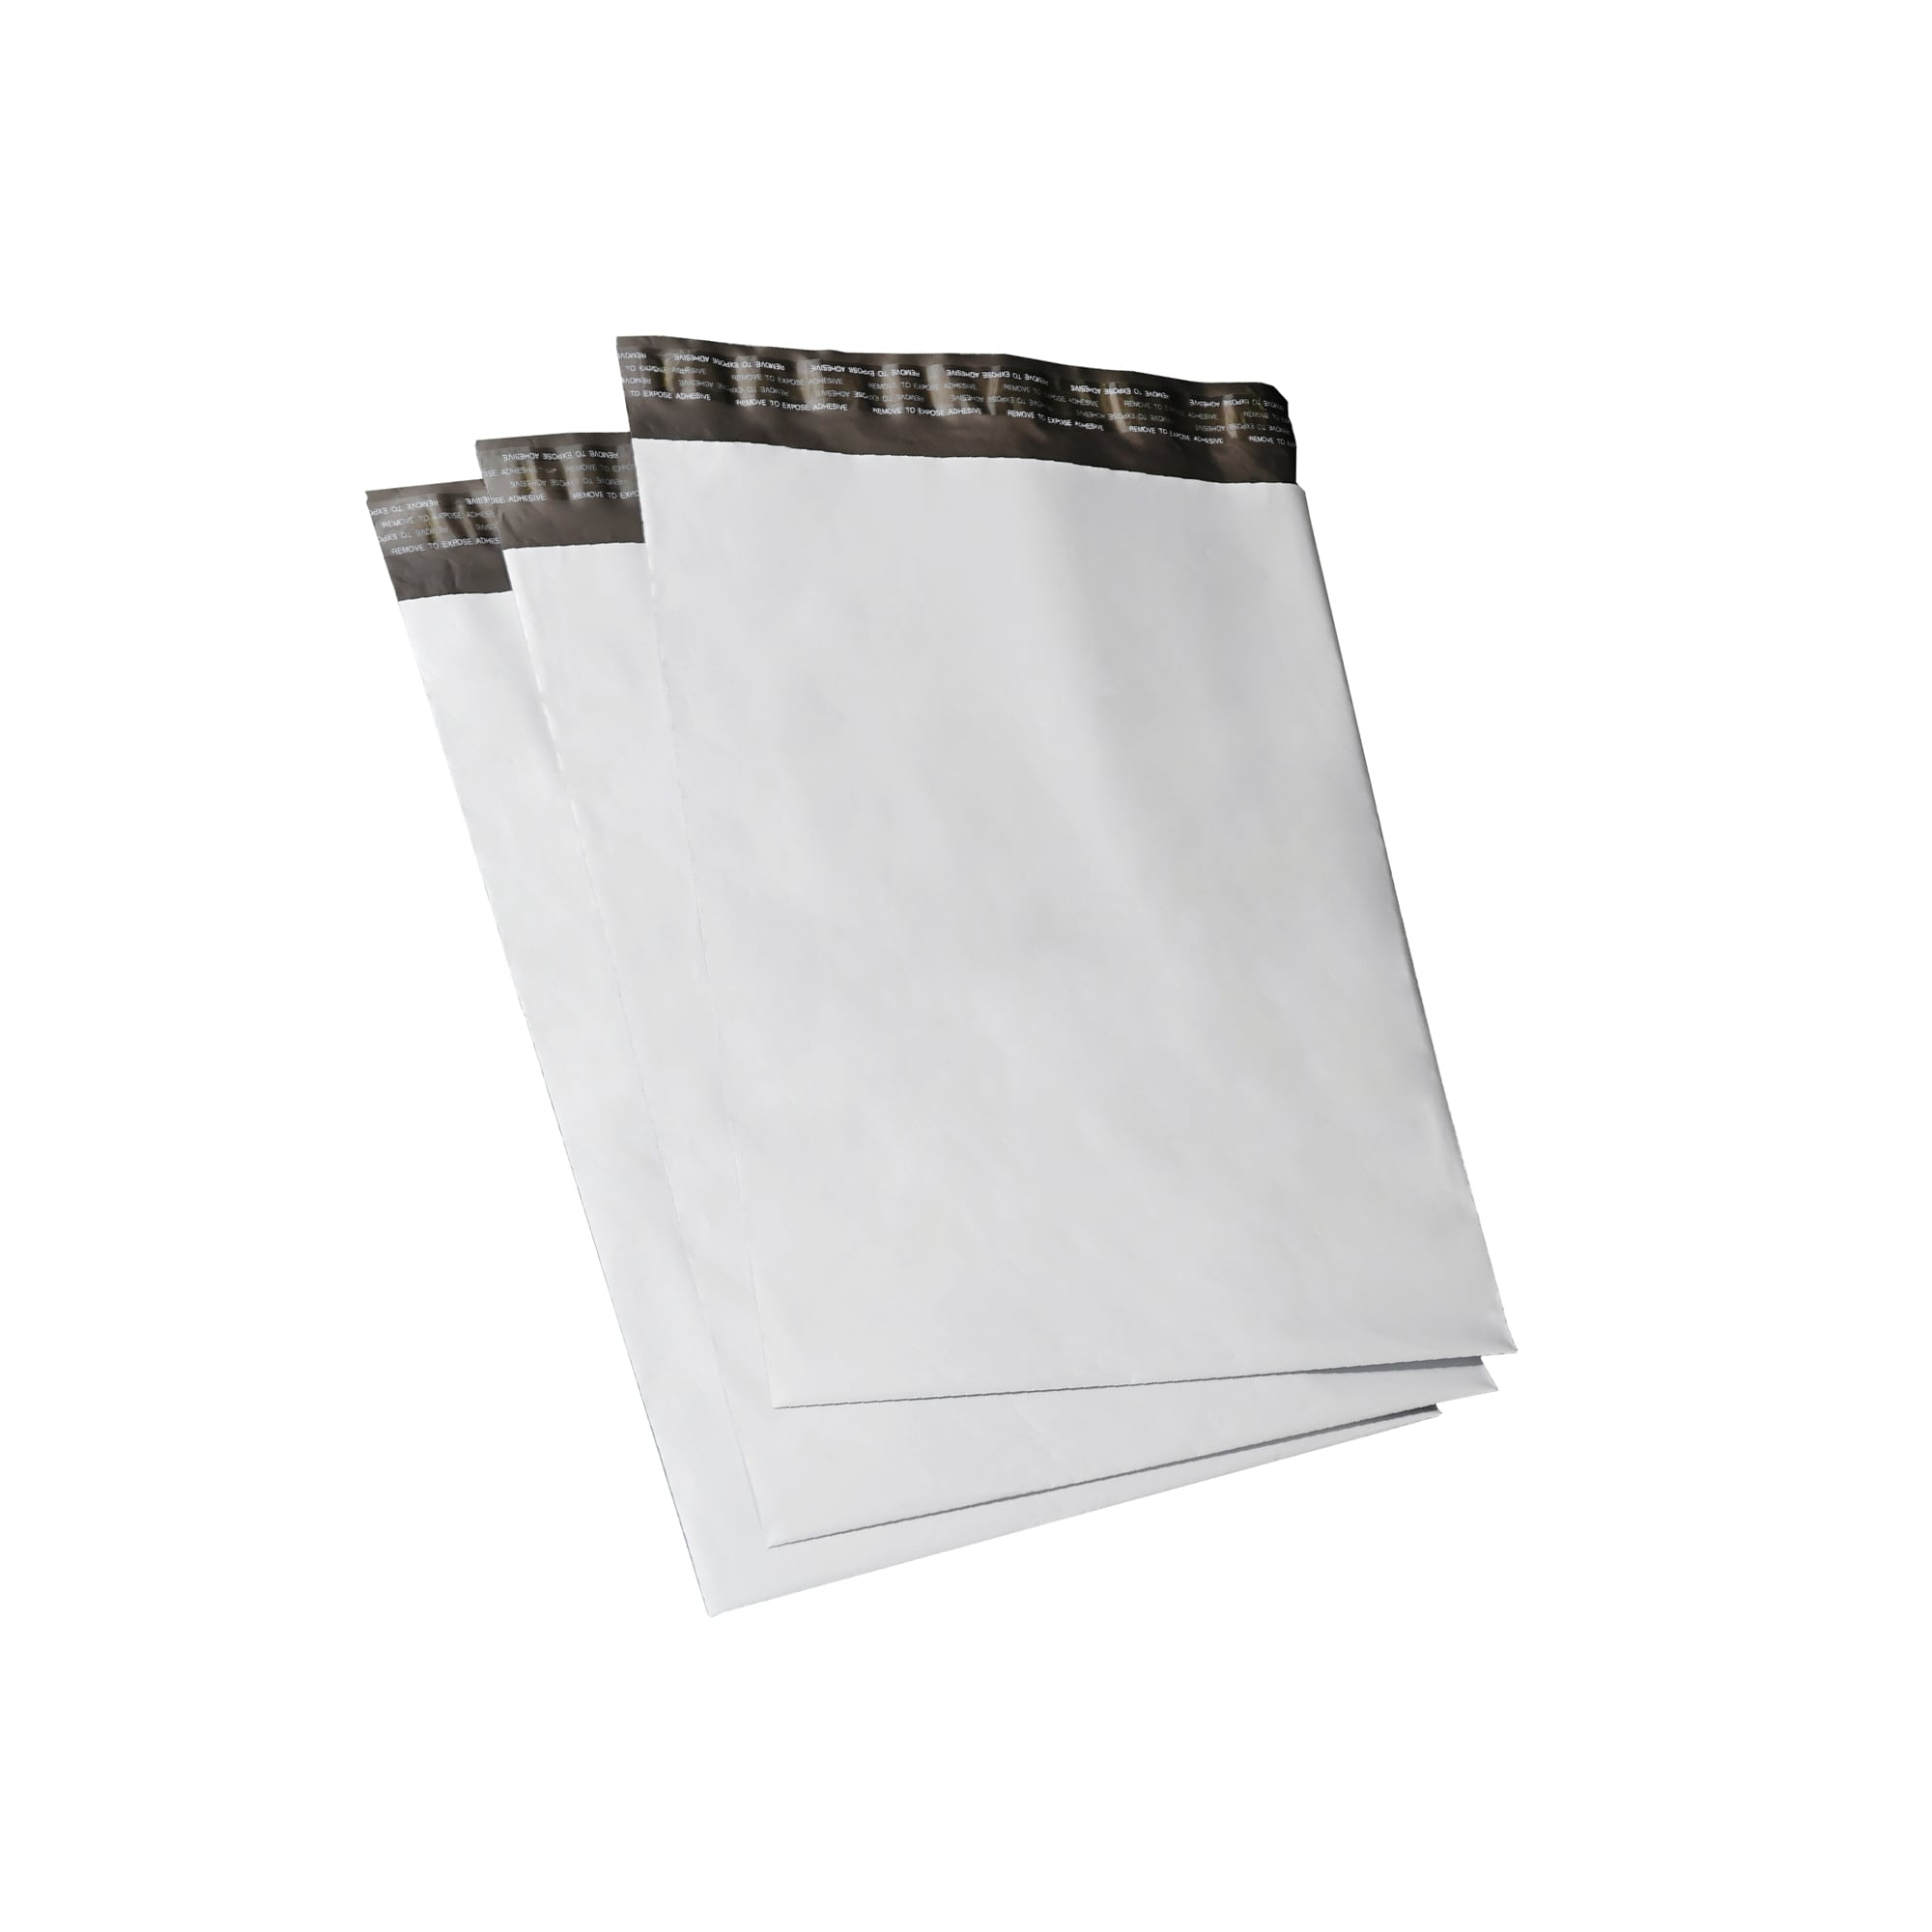 100 10x13 ~ 25 9x12 ~ Poly Mailers Envelopes Bags Plastic Shipping Bag 10 x 13